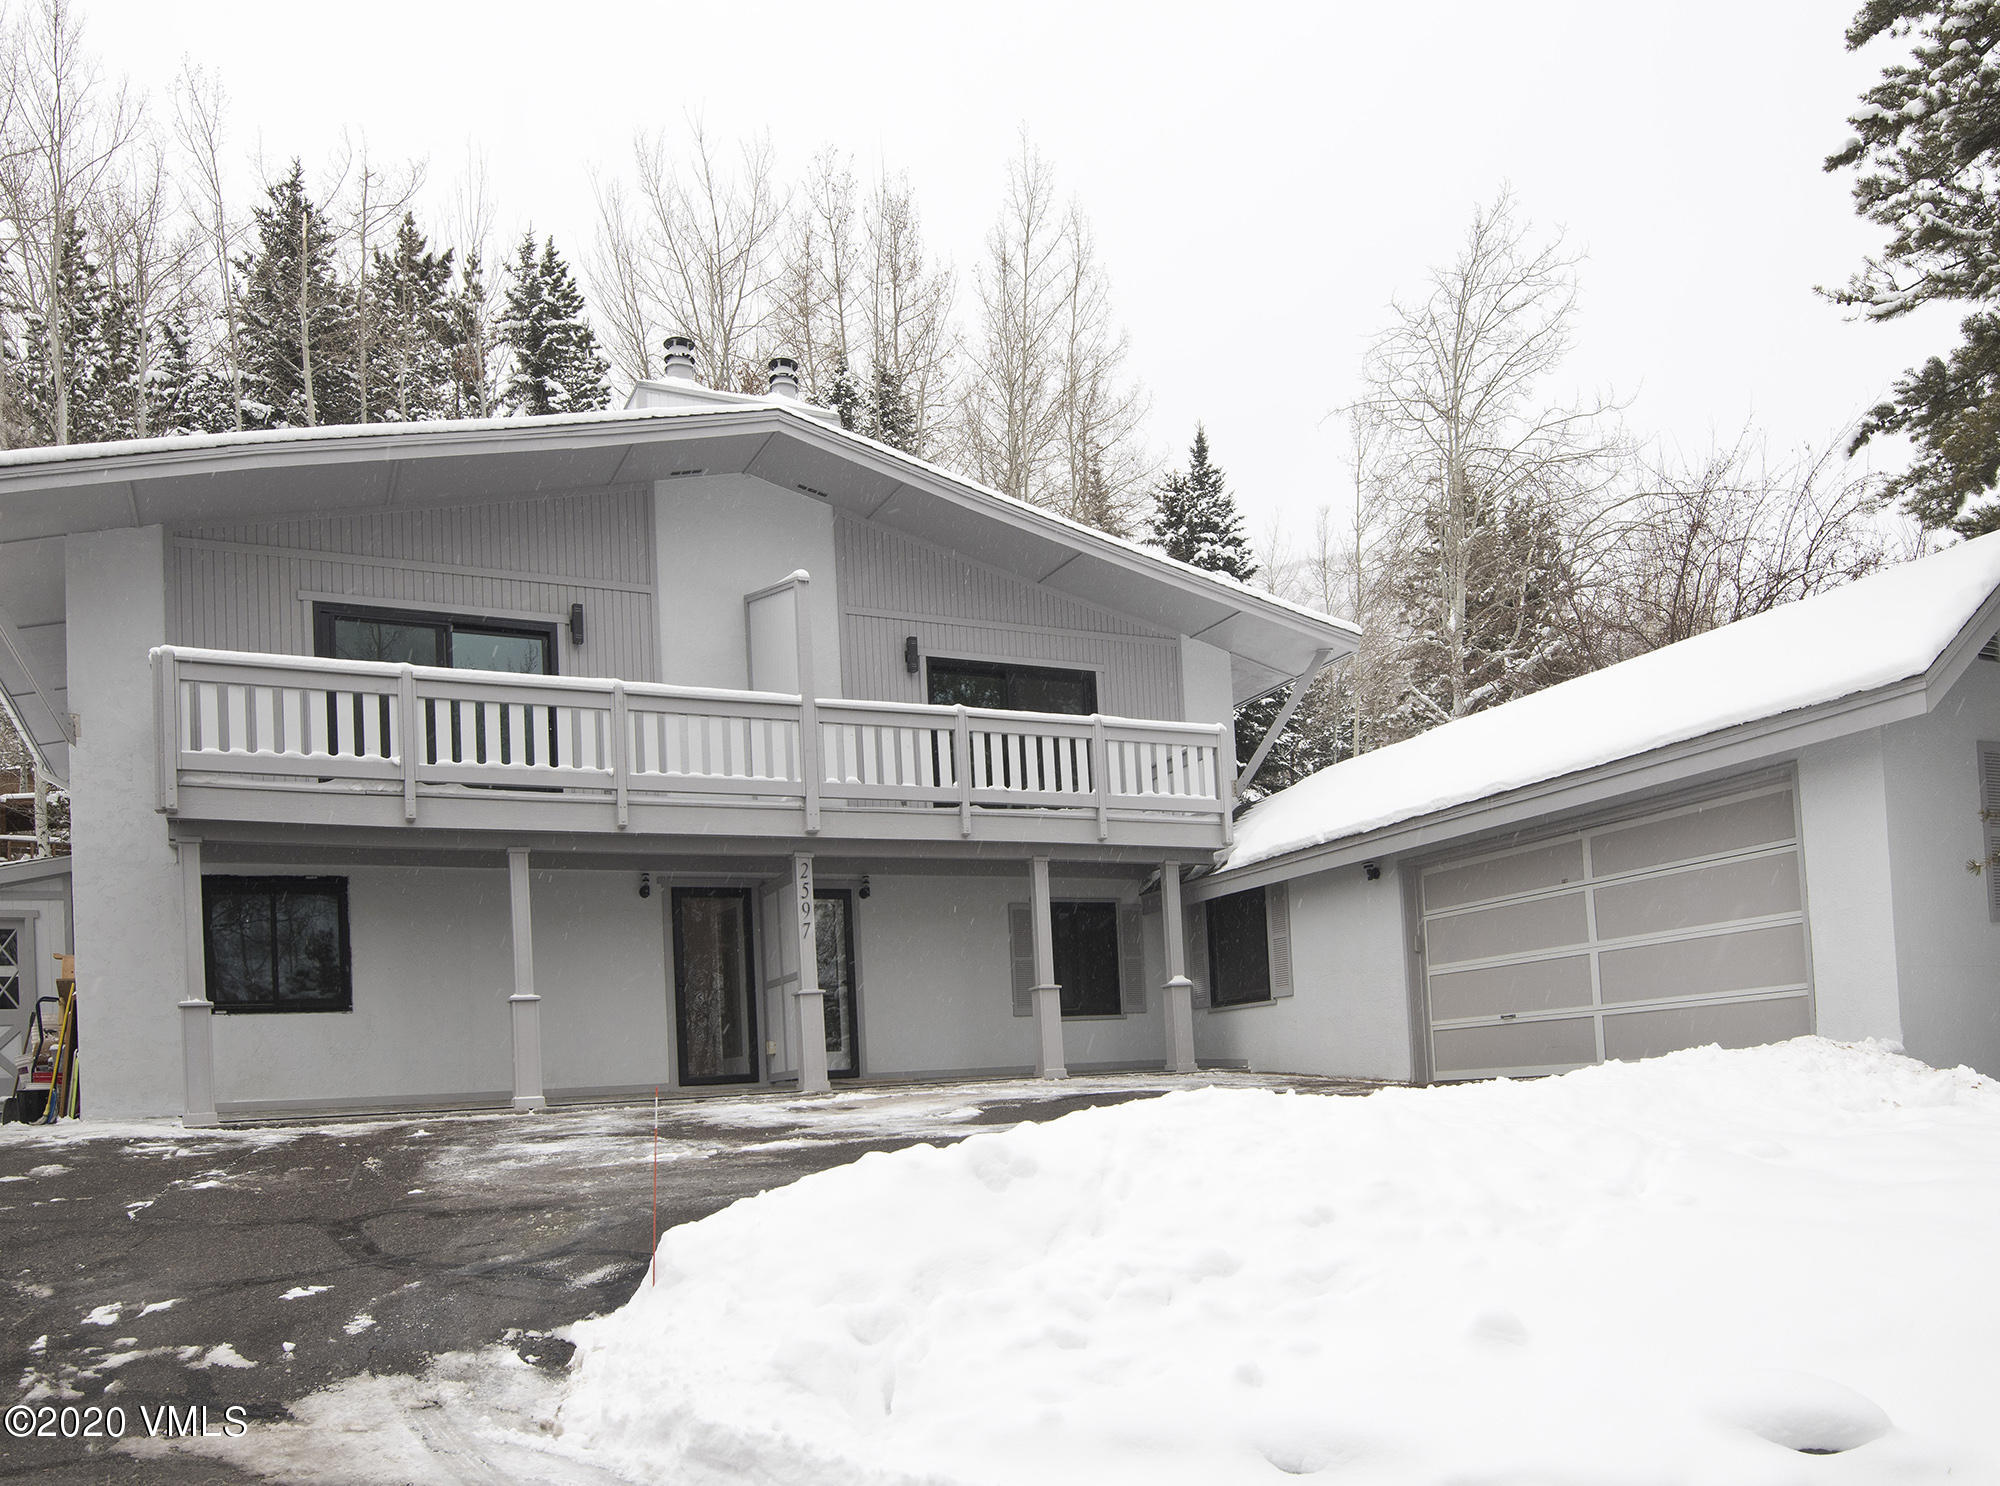 Recently refurbished inside and out!  Four-bedroom + den duplex in sunny West Vail with 2-car garage!  Updated kitchen, baths and all surfaces!  2-car garage!  Alder trim, wood-burning fireplace!  Great for a local or as a second home!  Walk to the TOV free bus!